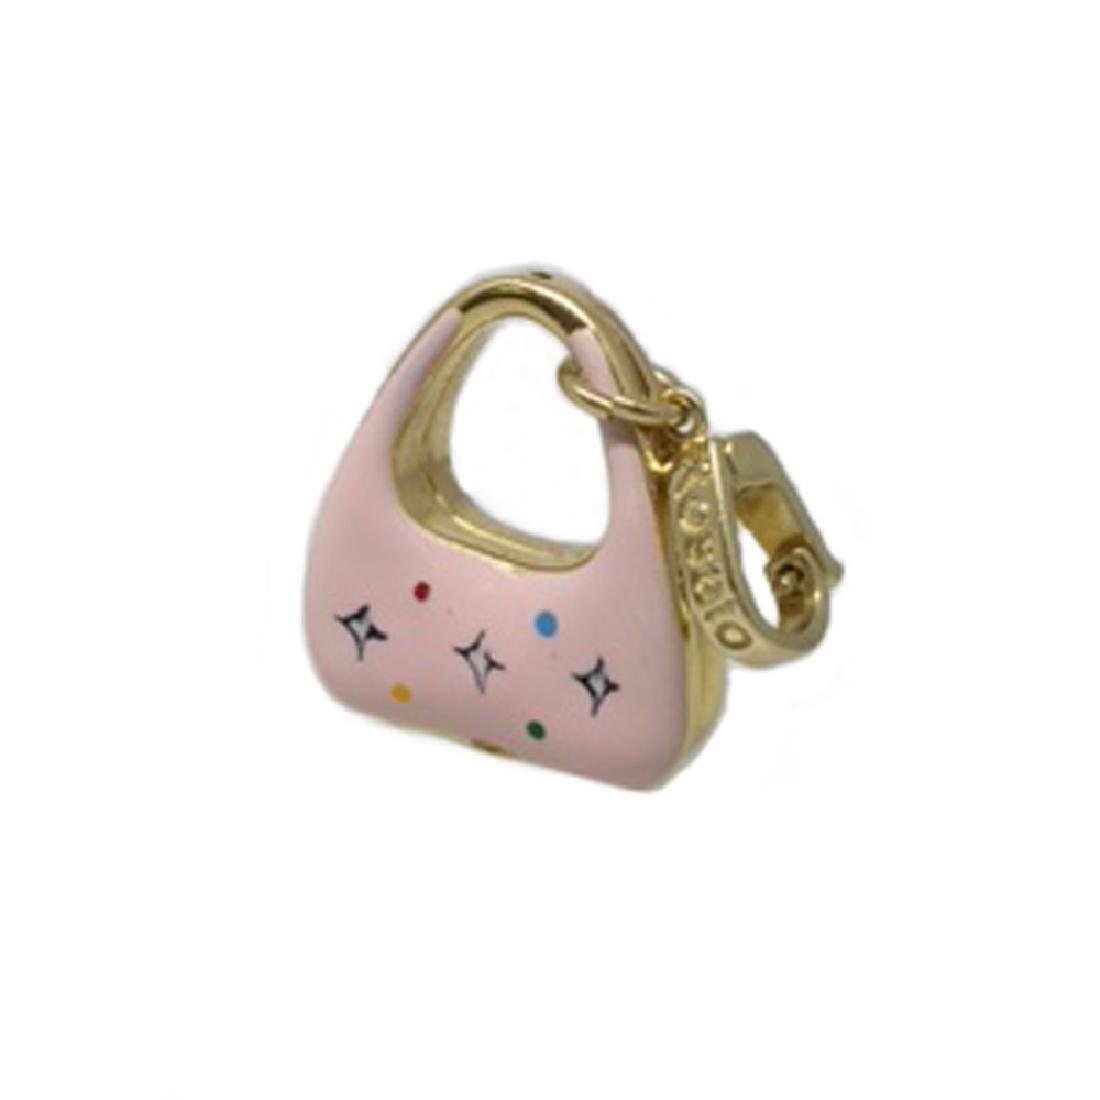 *Fine Jewelry 14 KT Gold, Made In Italy, Pink Purse